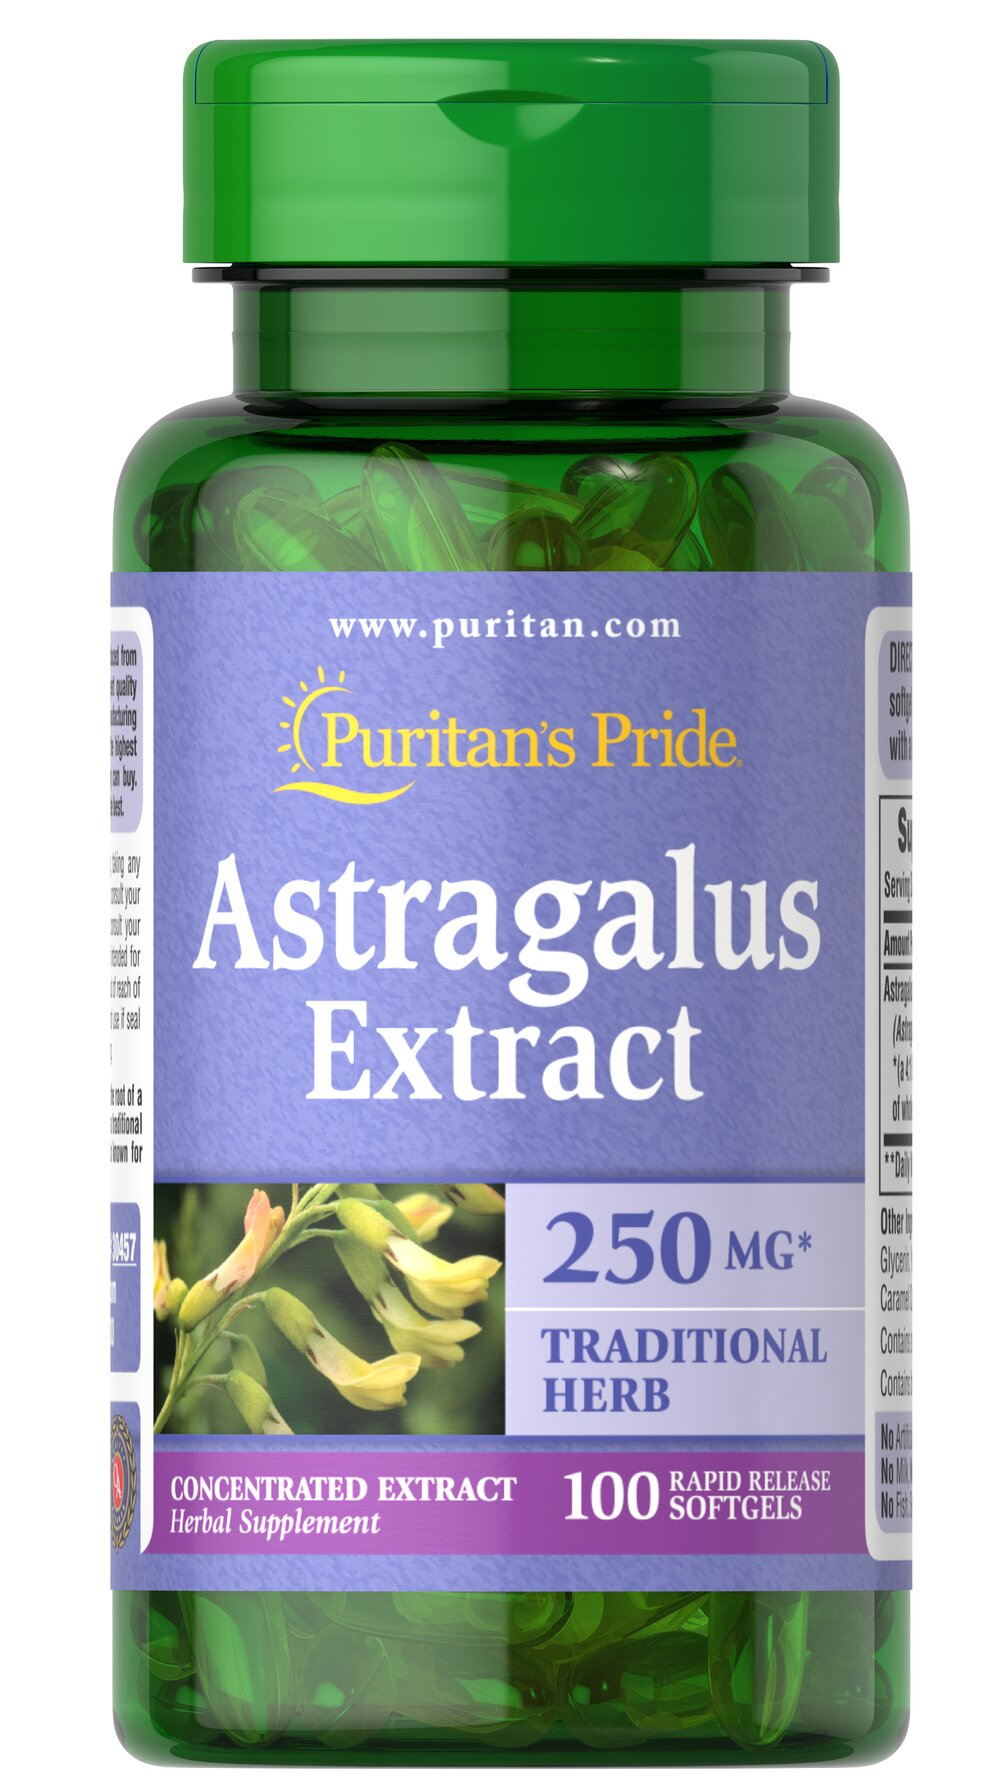 Astragalus 1000 mg <p>Traditional Chinese Herb </p><p>Astragalus contains naturally occurring flavonoids and polysaccharides. As a traditional Chinese herb, Astragalus is known for its goodness.</p> 100 Softgels 1000 mg $13.99